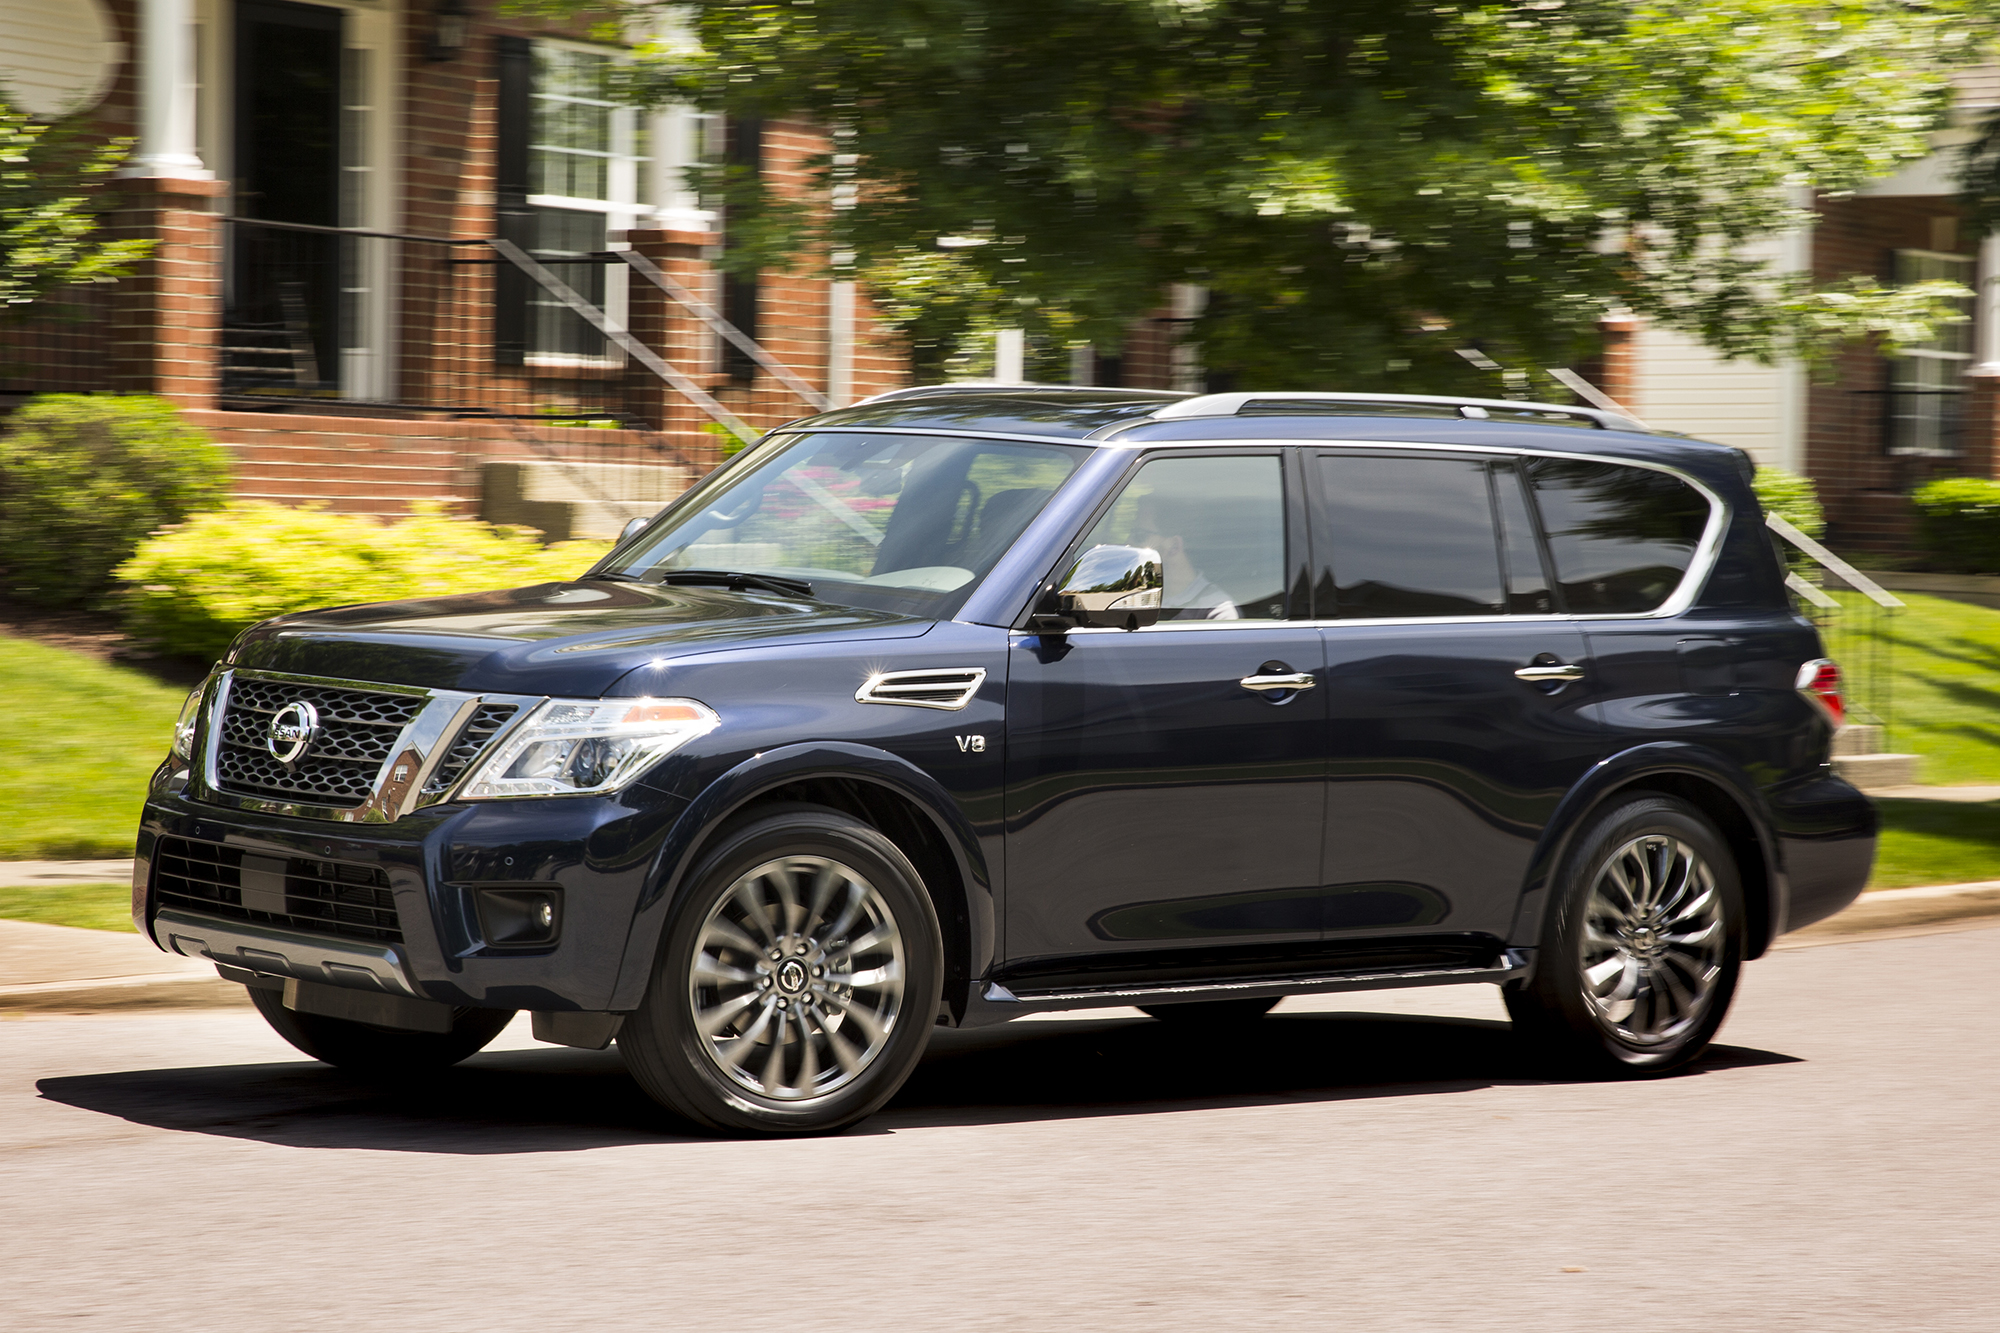 2020 Nissan Armada: What's Changed